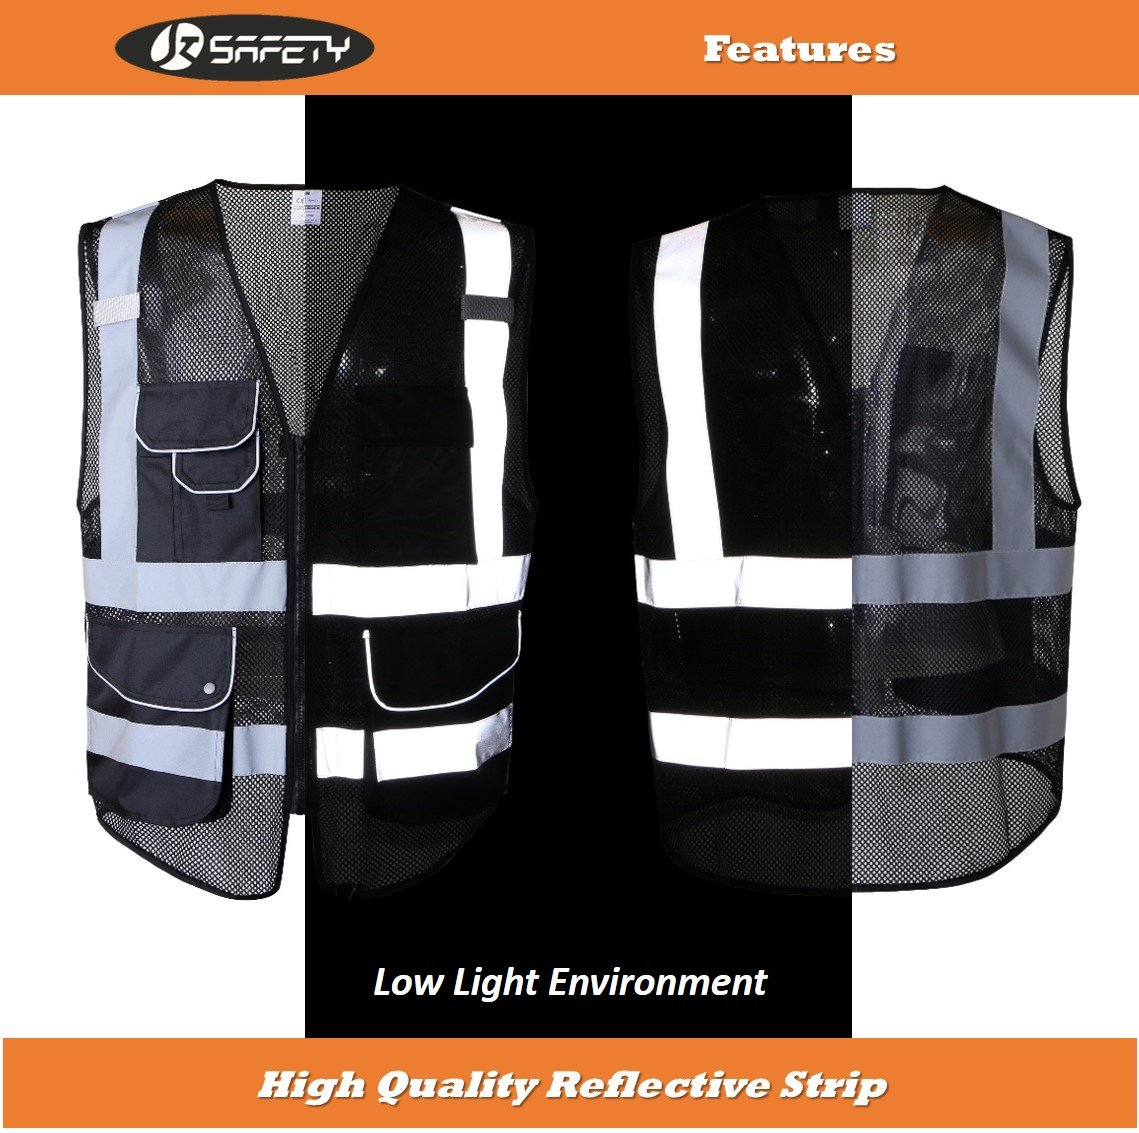 JKSafety 9 Pockets Class 2 High Visibility Zipper Front Safety Vest With Reflective Strips,HQ Breathable Mesh, Oxford Fabric for pocket materials. Black Meets ANSI/ISEA Standards (X-Large, Black) … by JKSafety (Image #5)